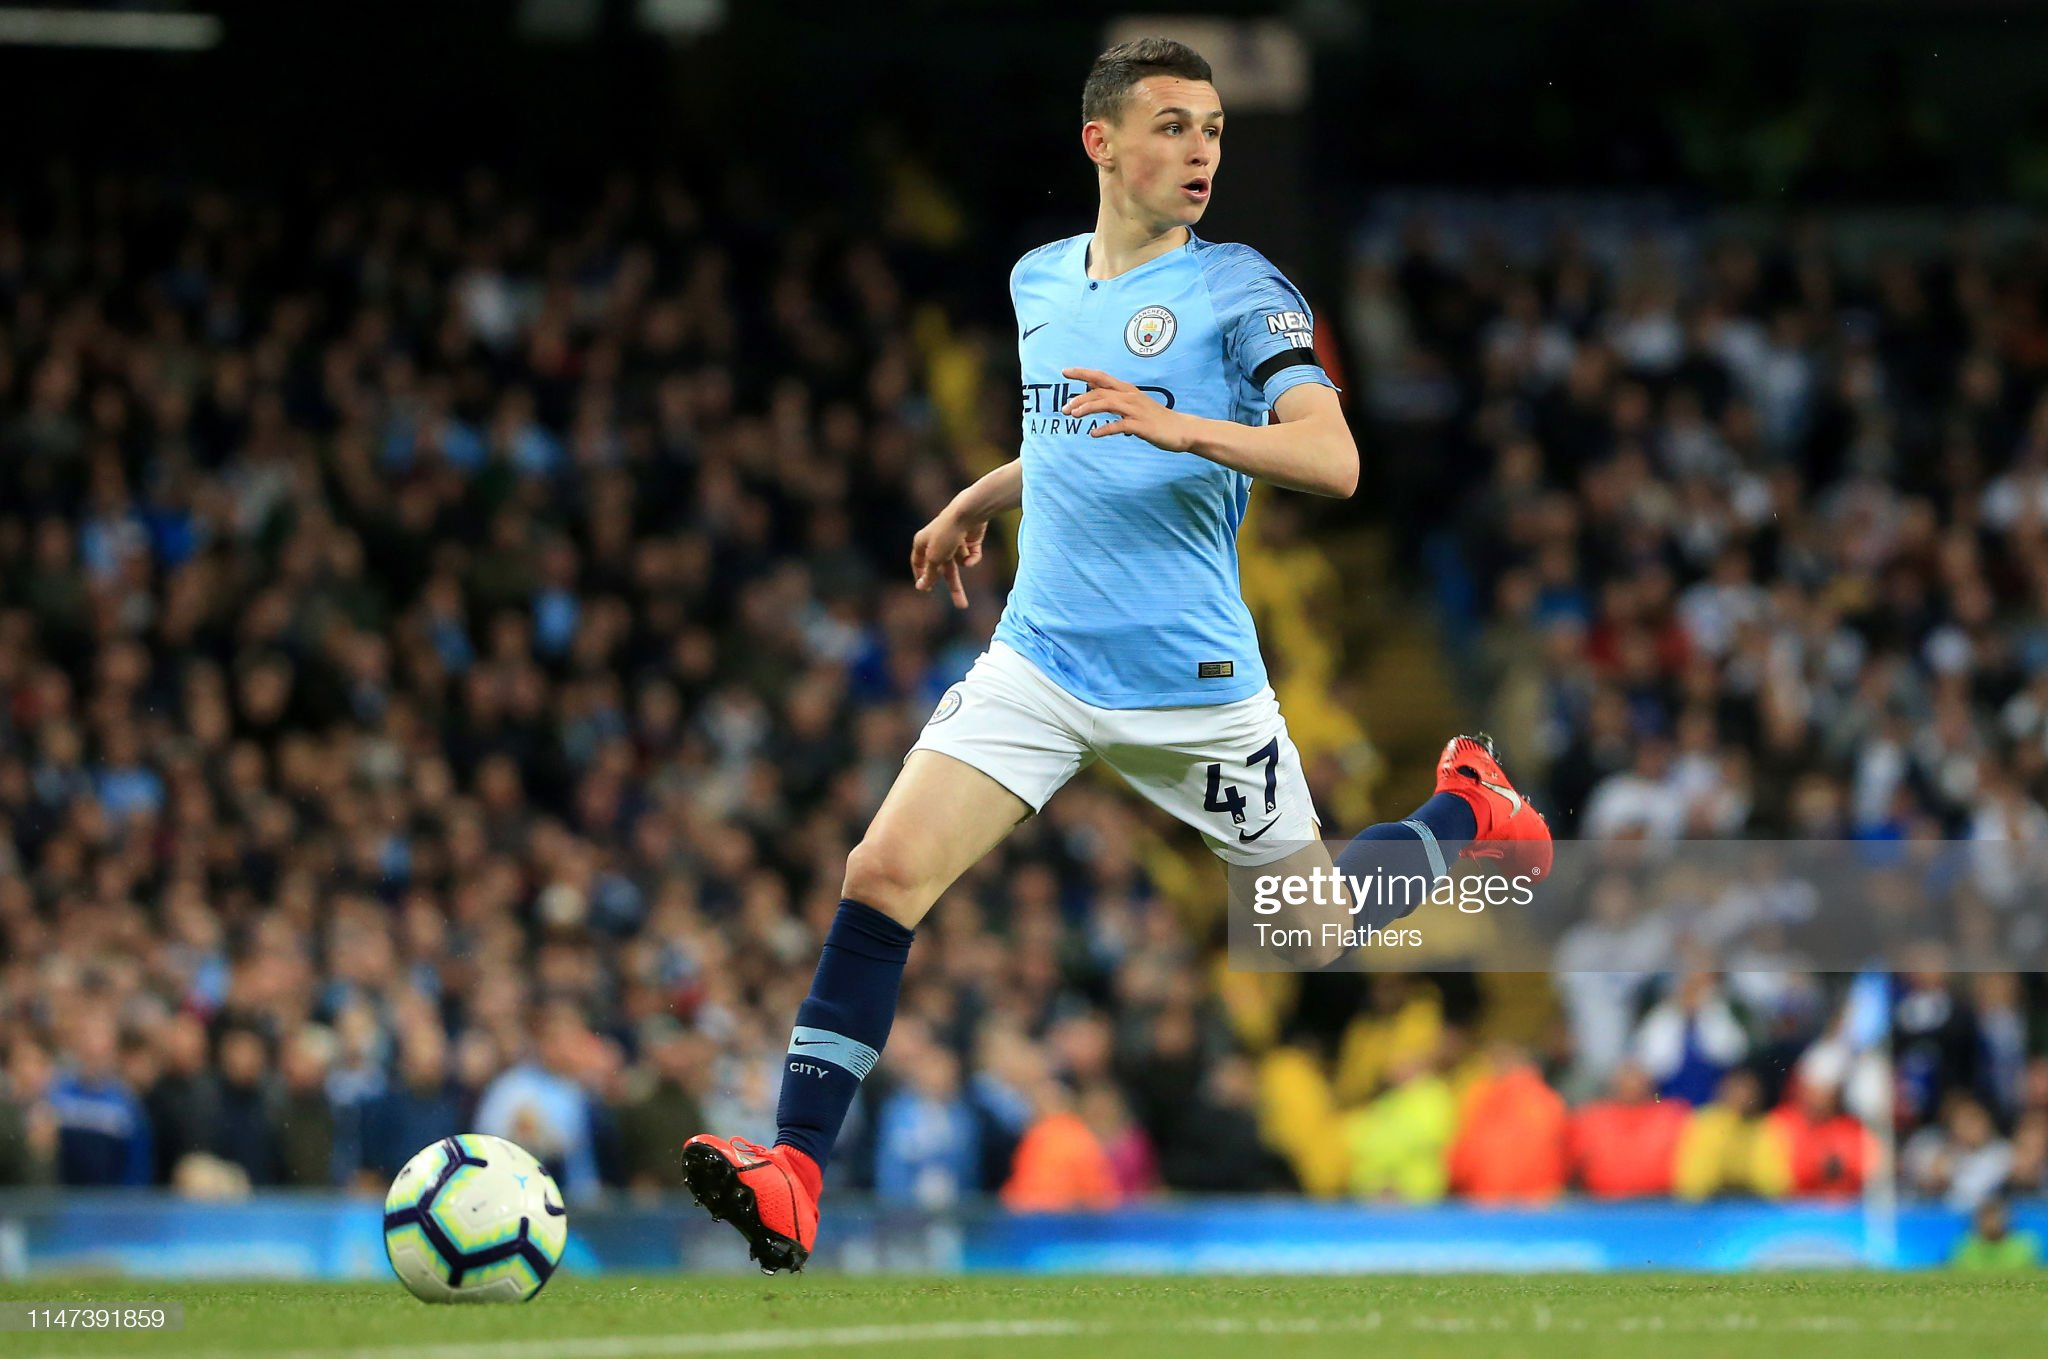 https://media.gettyimages.com/photos/phil-foden-of-manchester-city-in-action-during-the-premier-league-picture-id1147391859?s=2048x2048